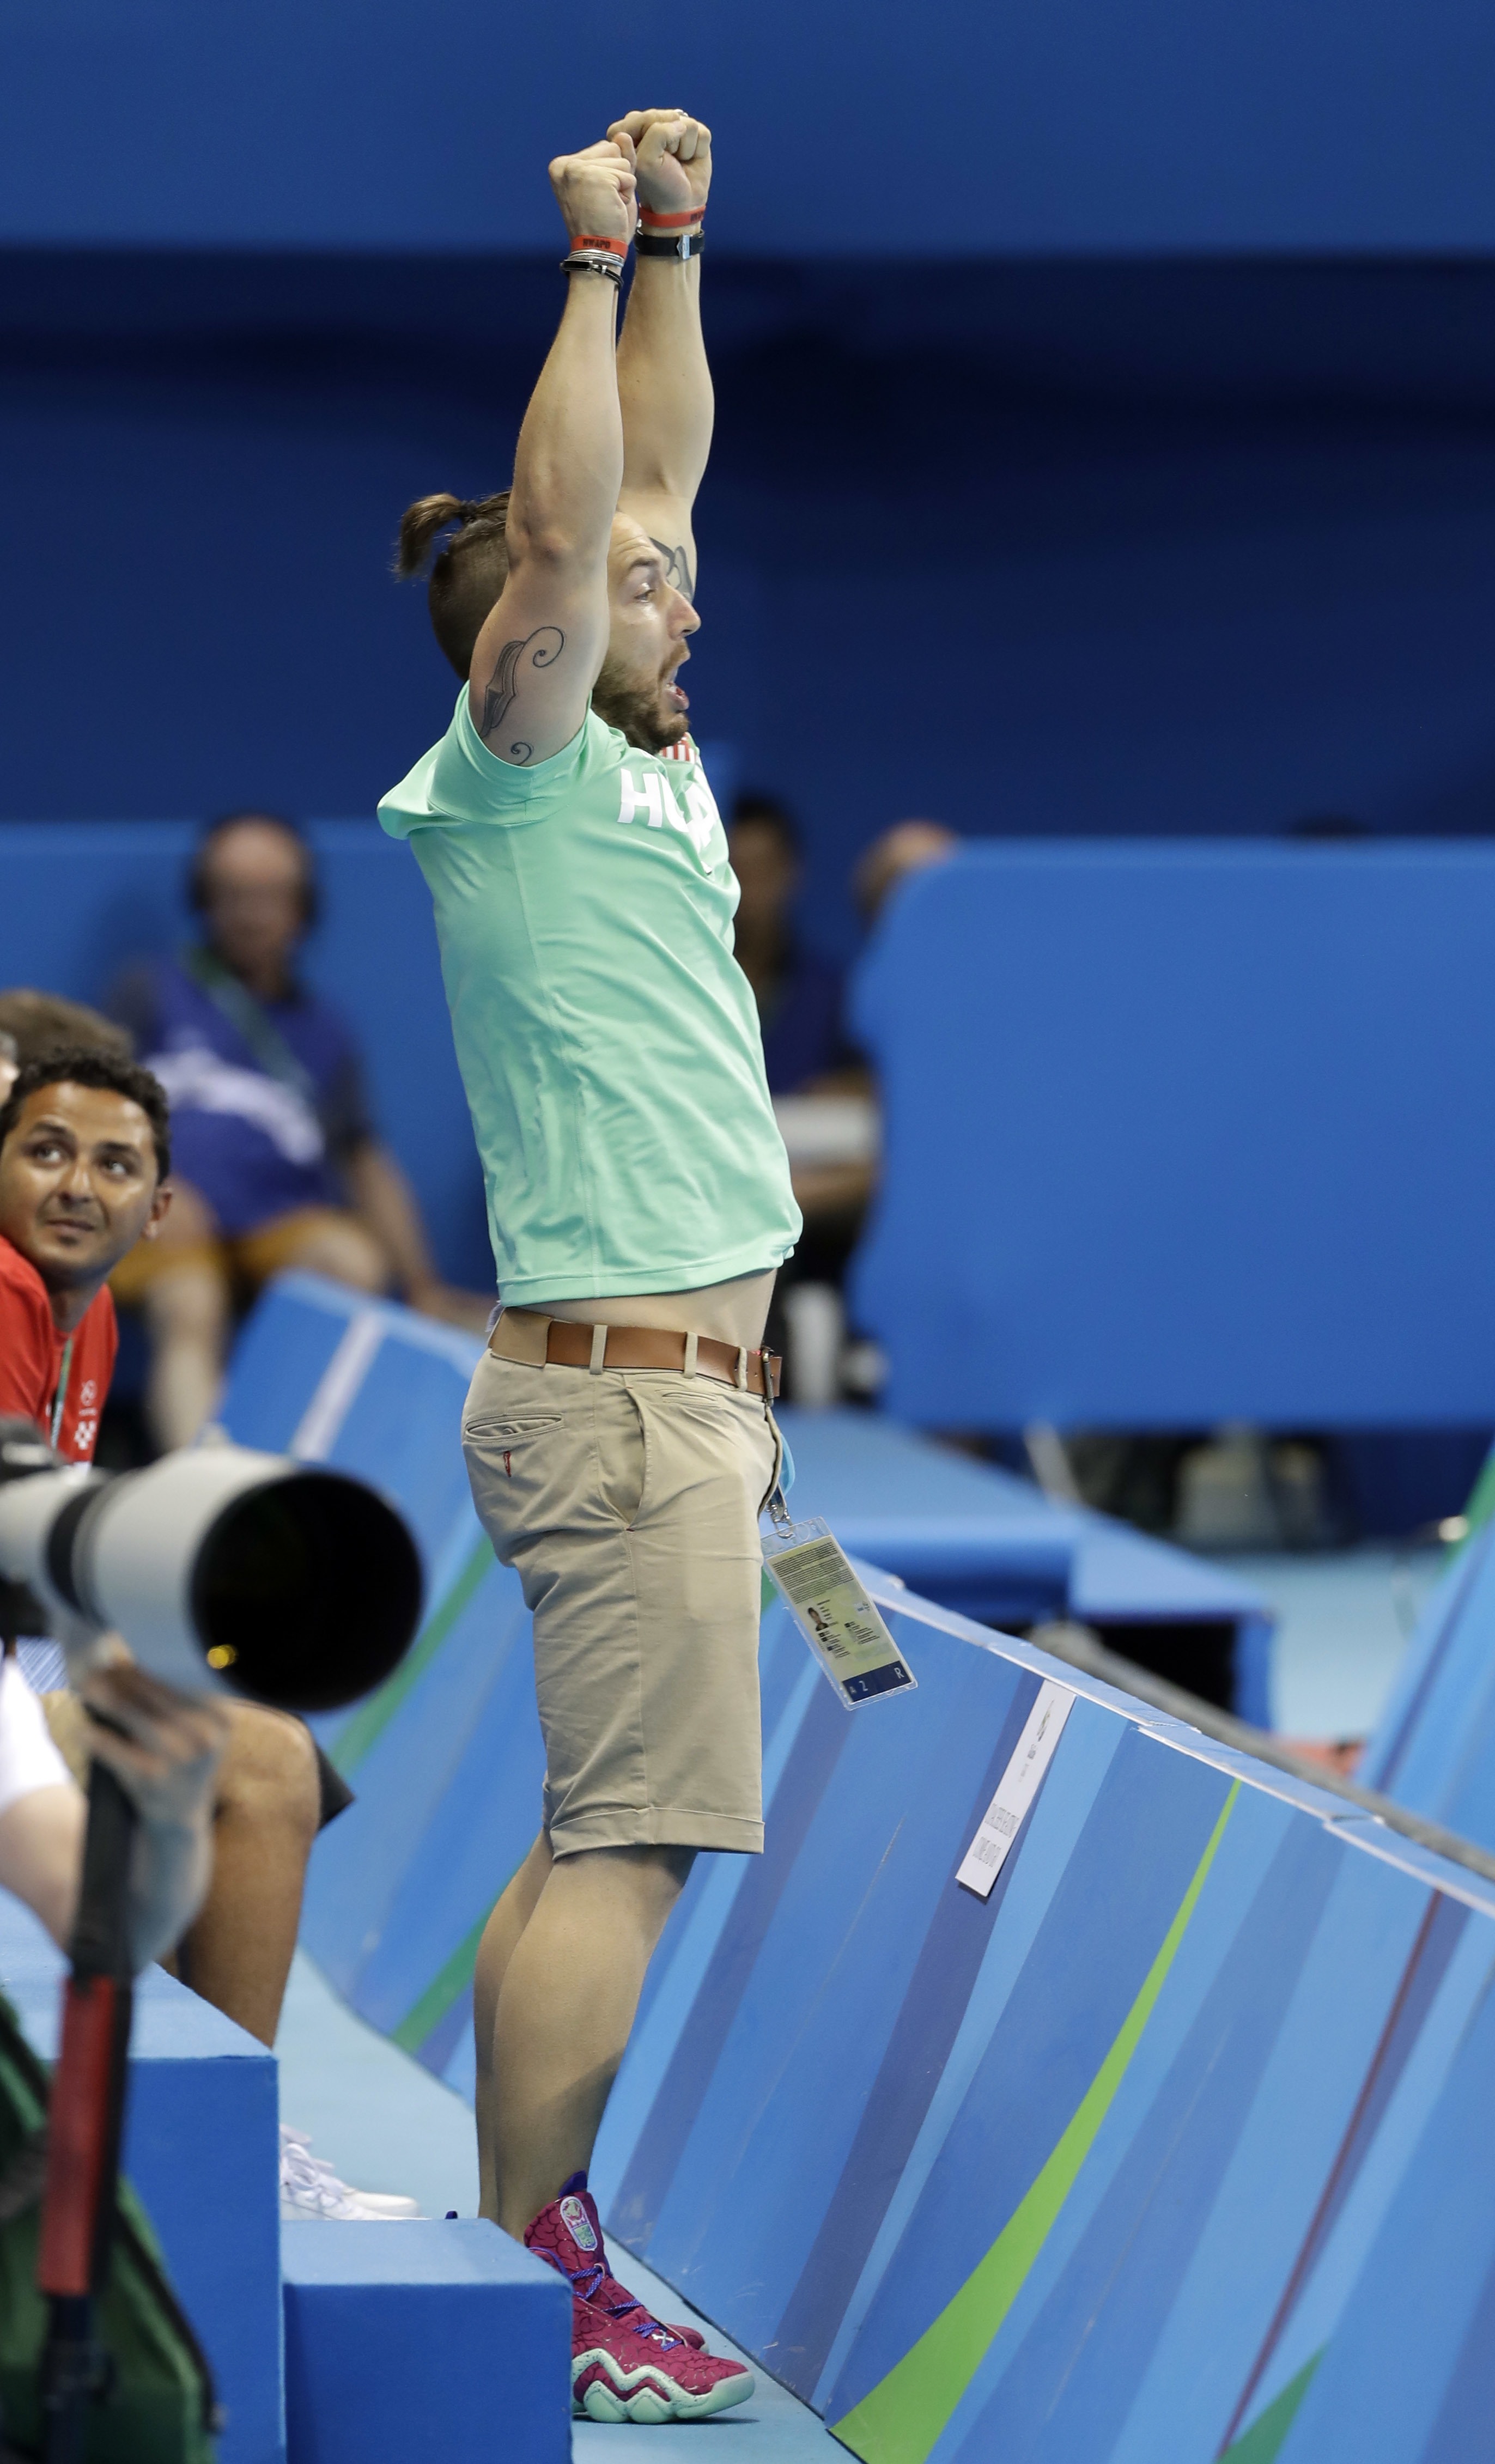 Shane Tusup, the husband of Hungary's Katinka Hosszu, celebrates after she wins the gold medal in the women's 400-meter individual medley during the swimming competitions at the 2016 Summer Olympics, Saturday, Aug. 6, 2016, in Rio de Janeiro, Brazil. (AP